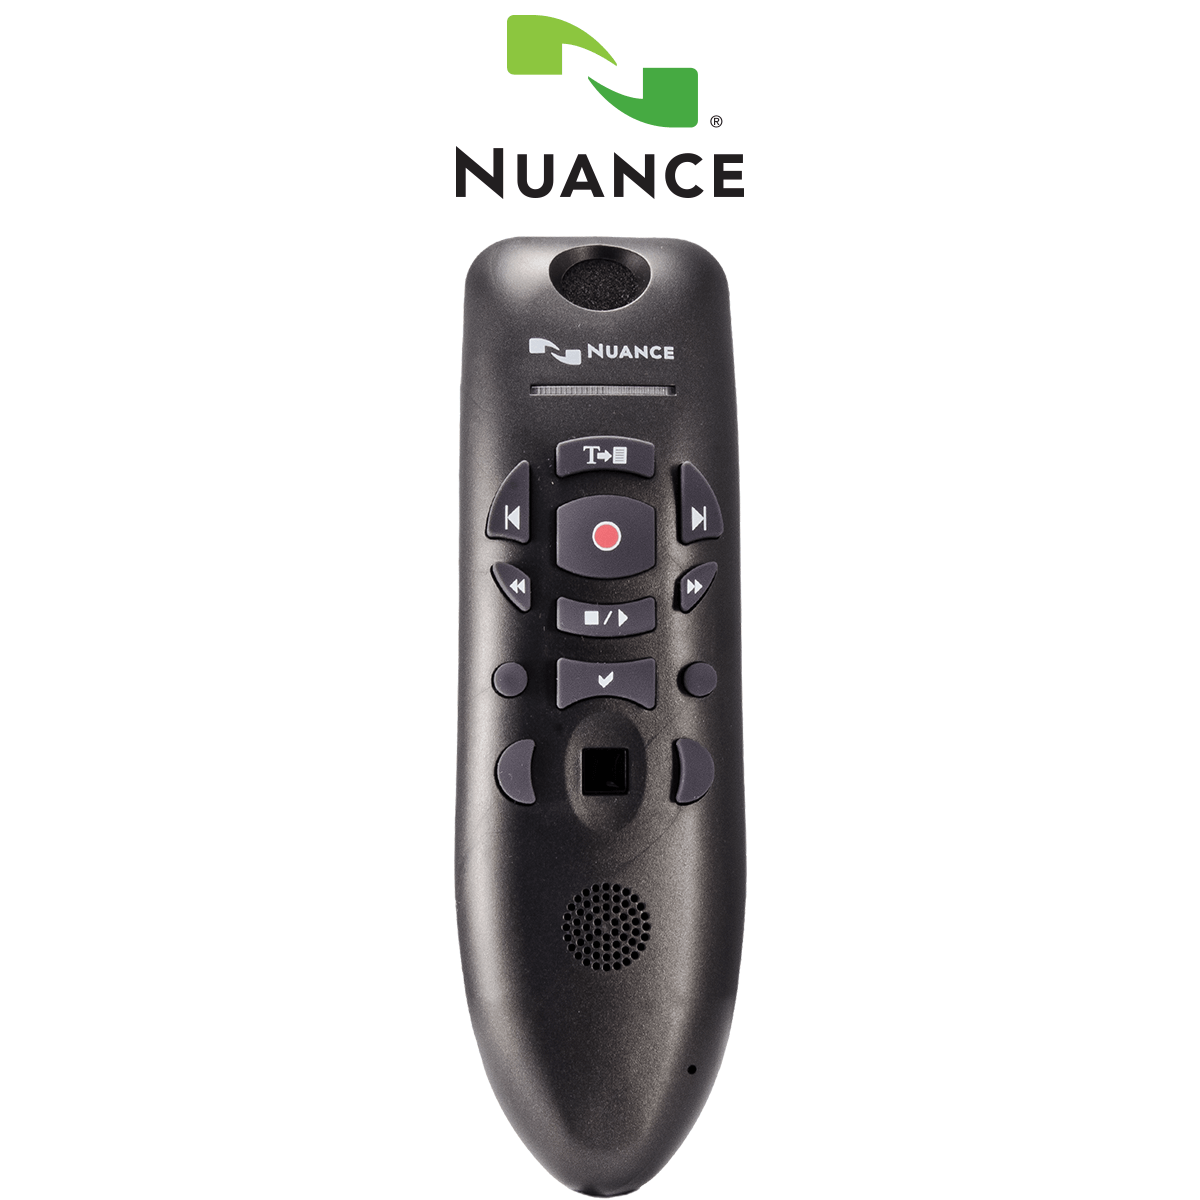 nuance powermic iii professional digital dictation and speech recognition. Black Bedroom Furniture Sets. Home Design Ideas